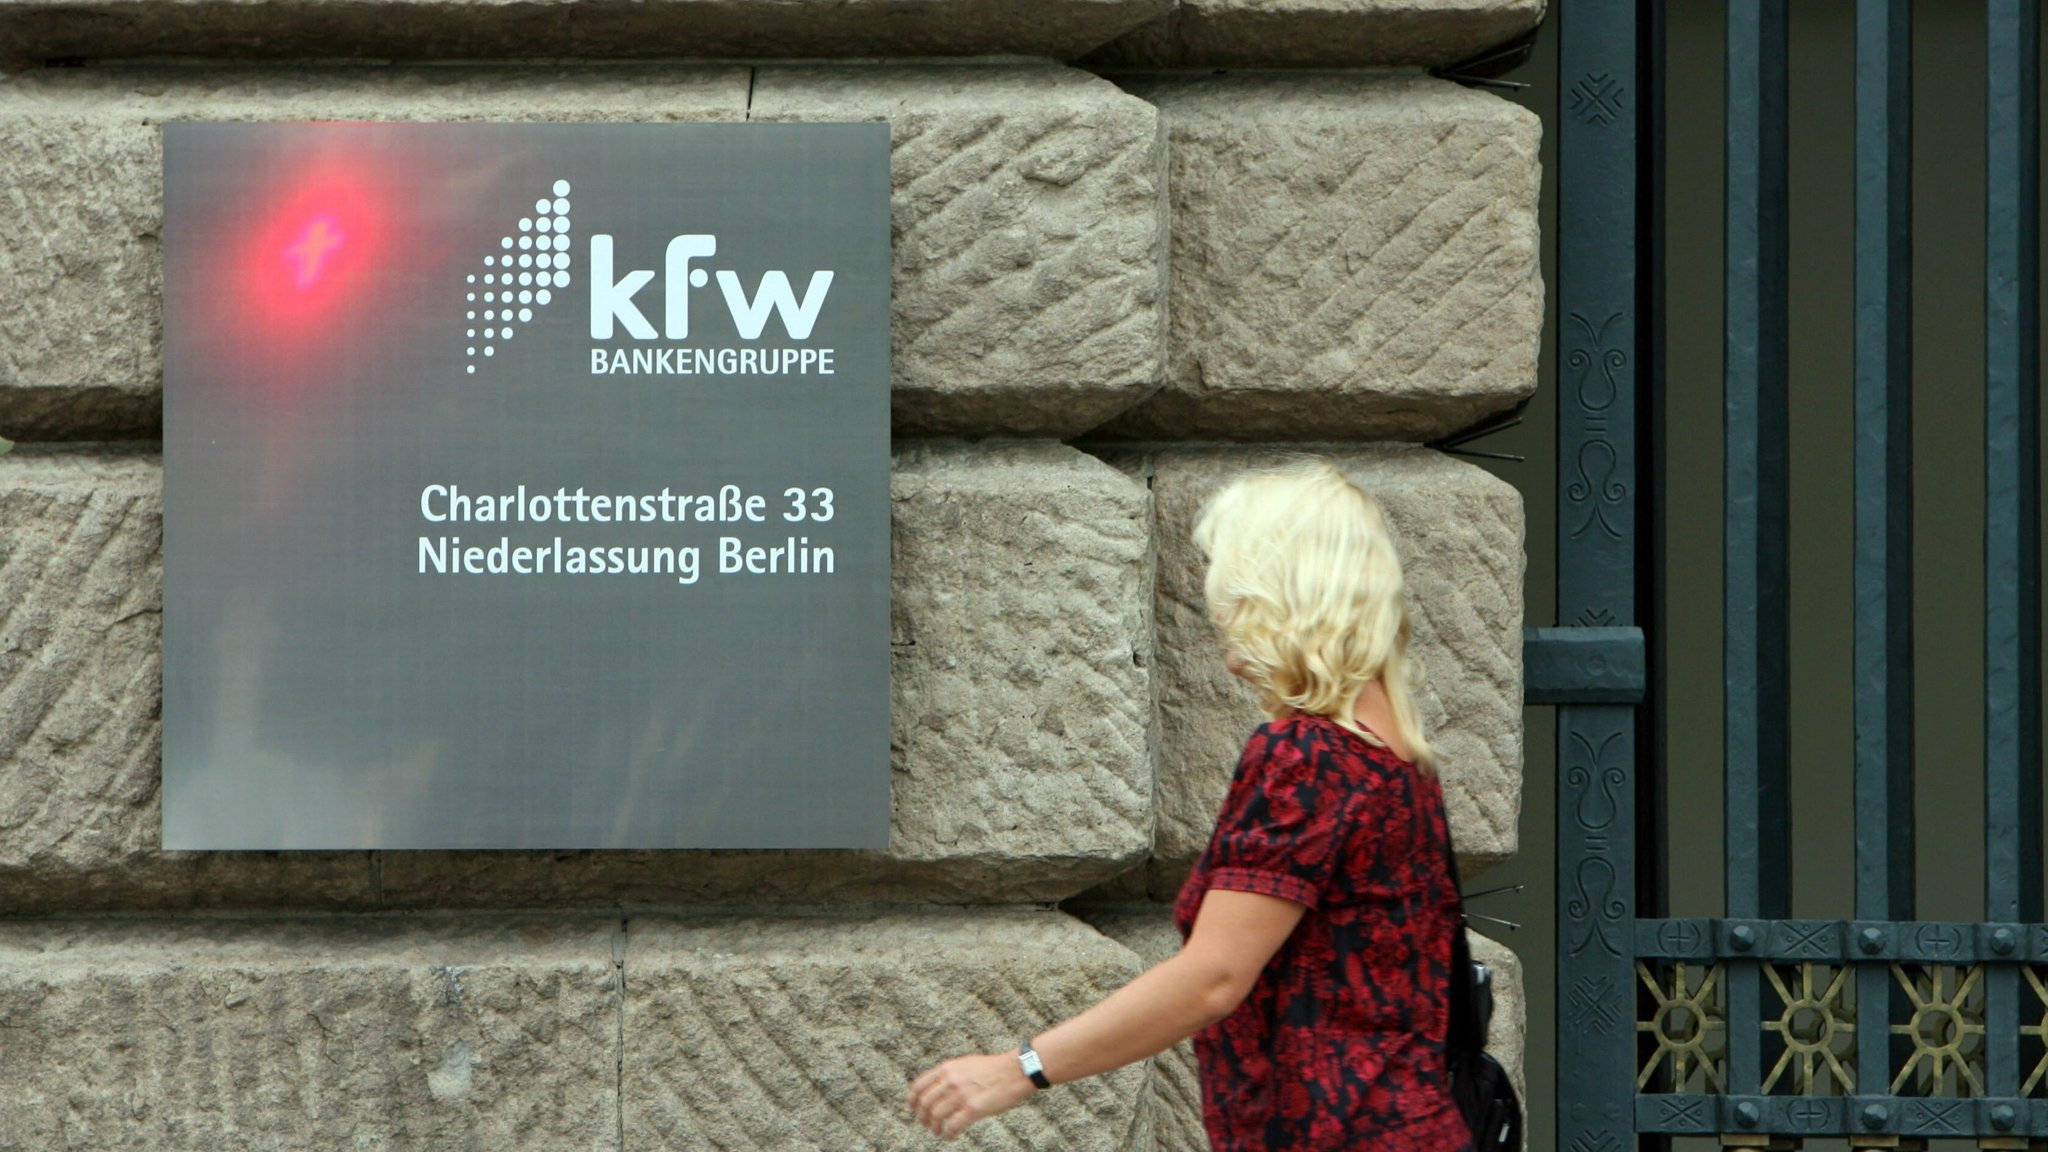 33 Libras A Euros Kfw Mistakenly Transfers Billions Of Euros To Four Other Banks